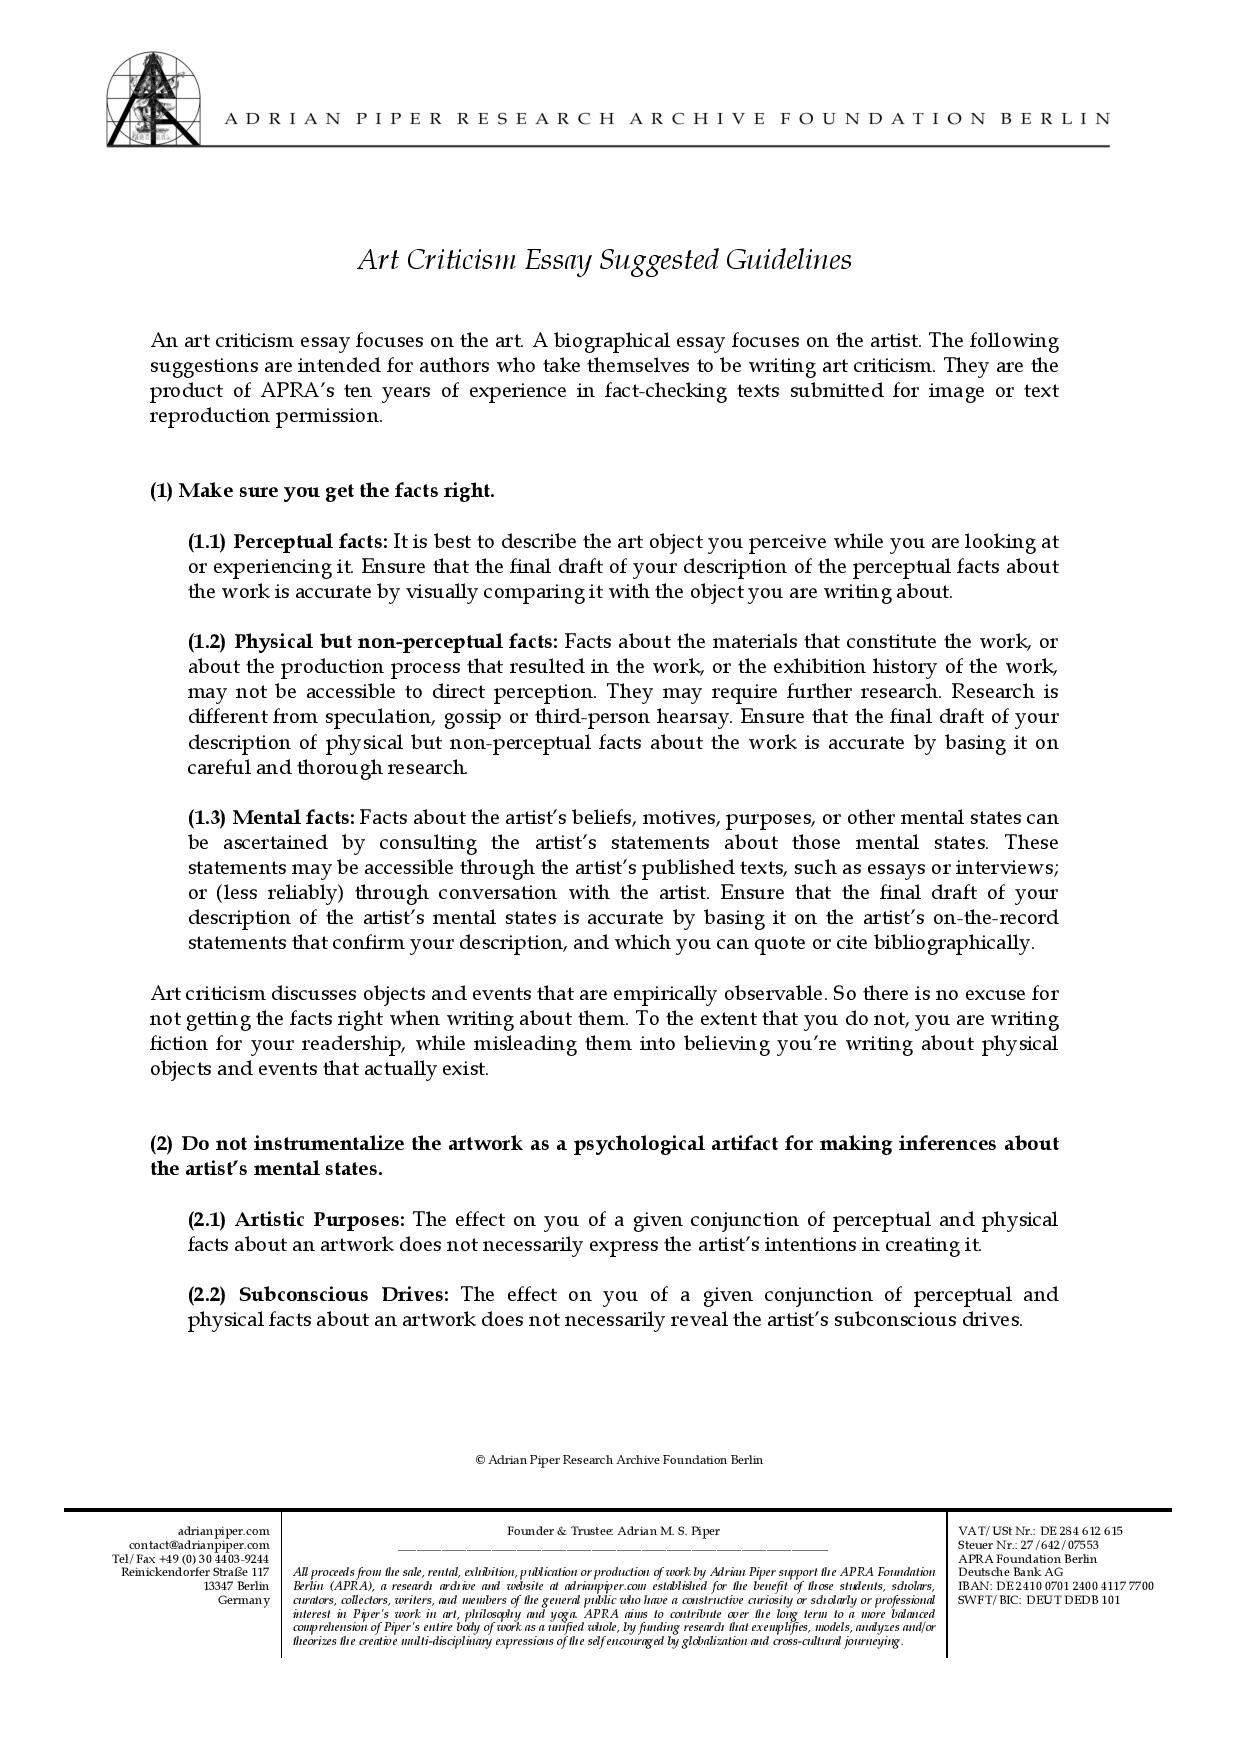 Essay On Healthy Eating Habits  Example Of Thesis Statement For Essay also Thesis Statement Examples For Narrative Essays Art Criticism Essay Suggested Guidelines  Adrian Piper  Genetically Modified Food Essay Thesis